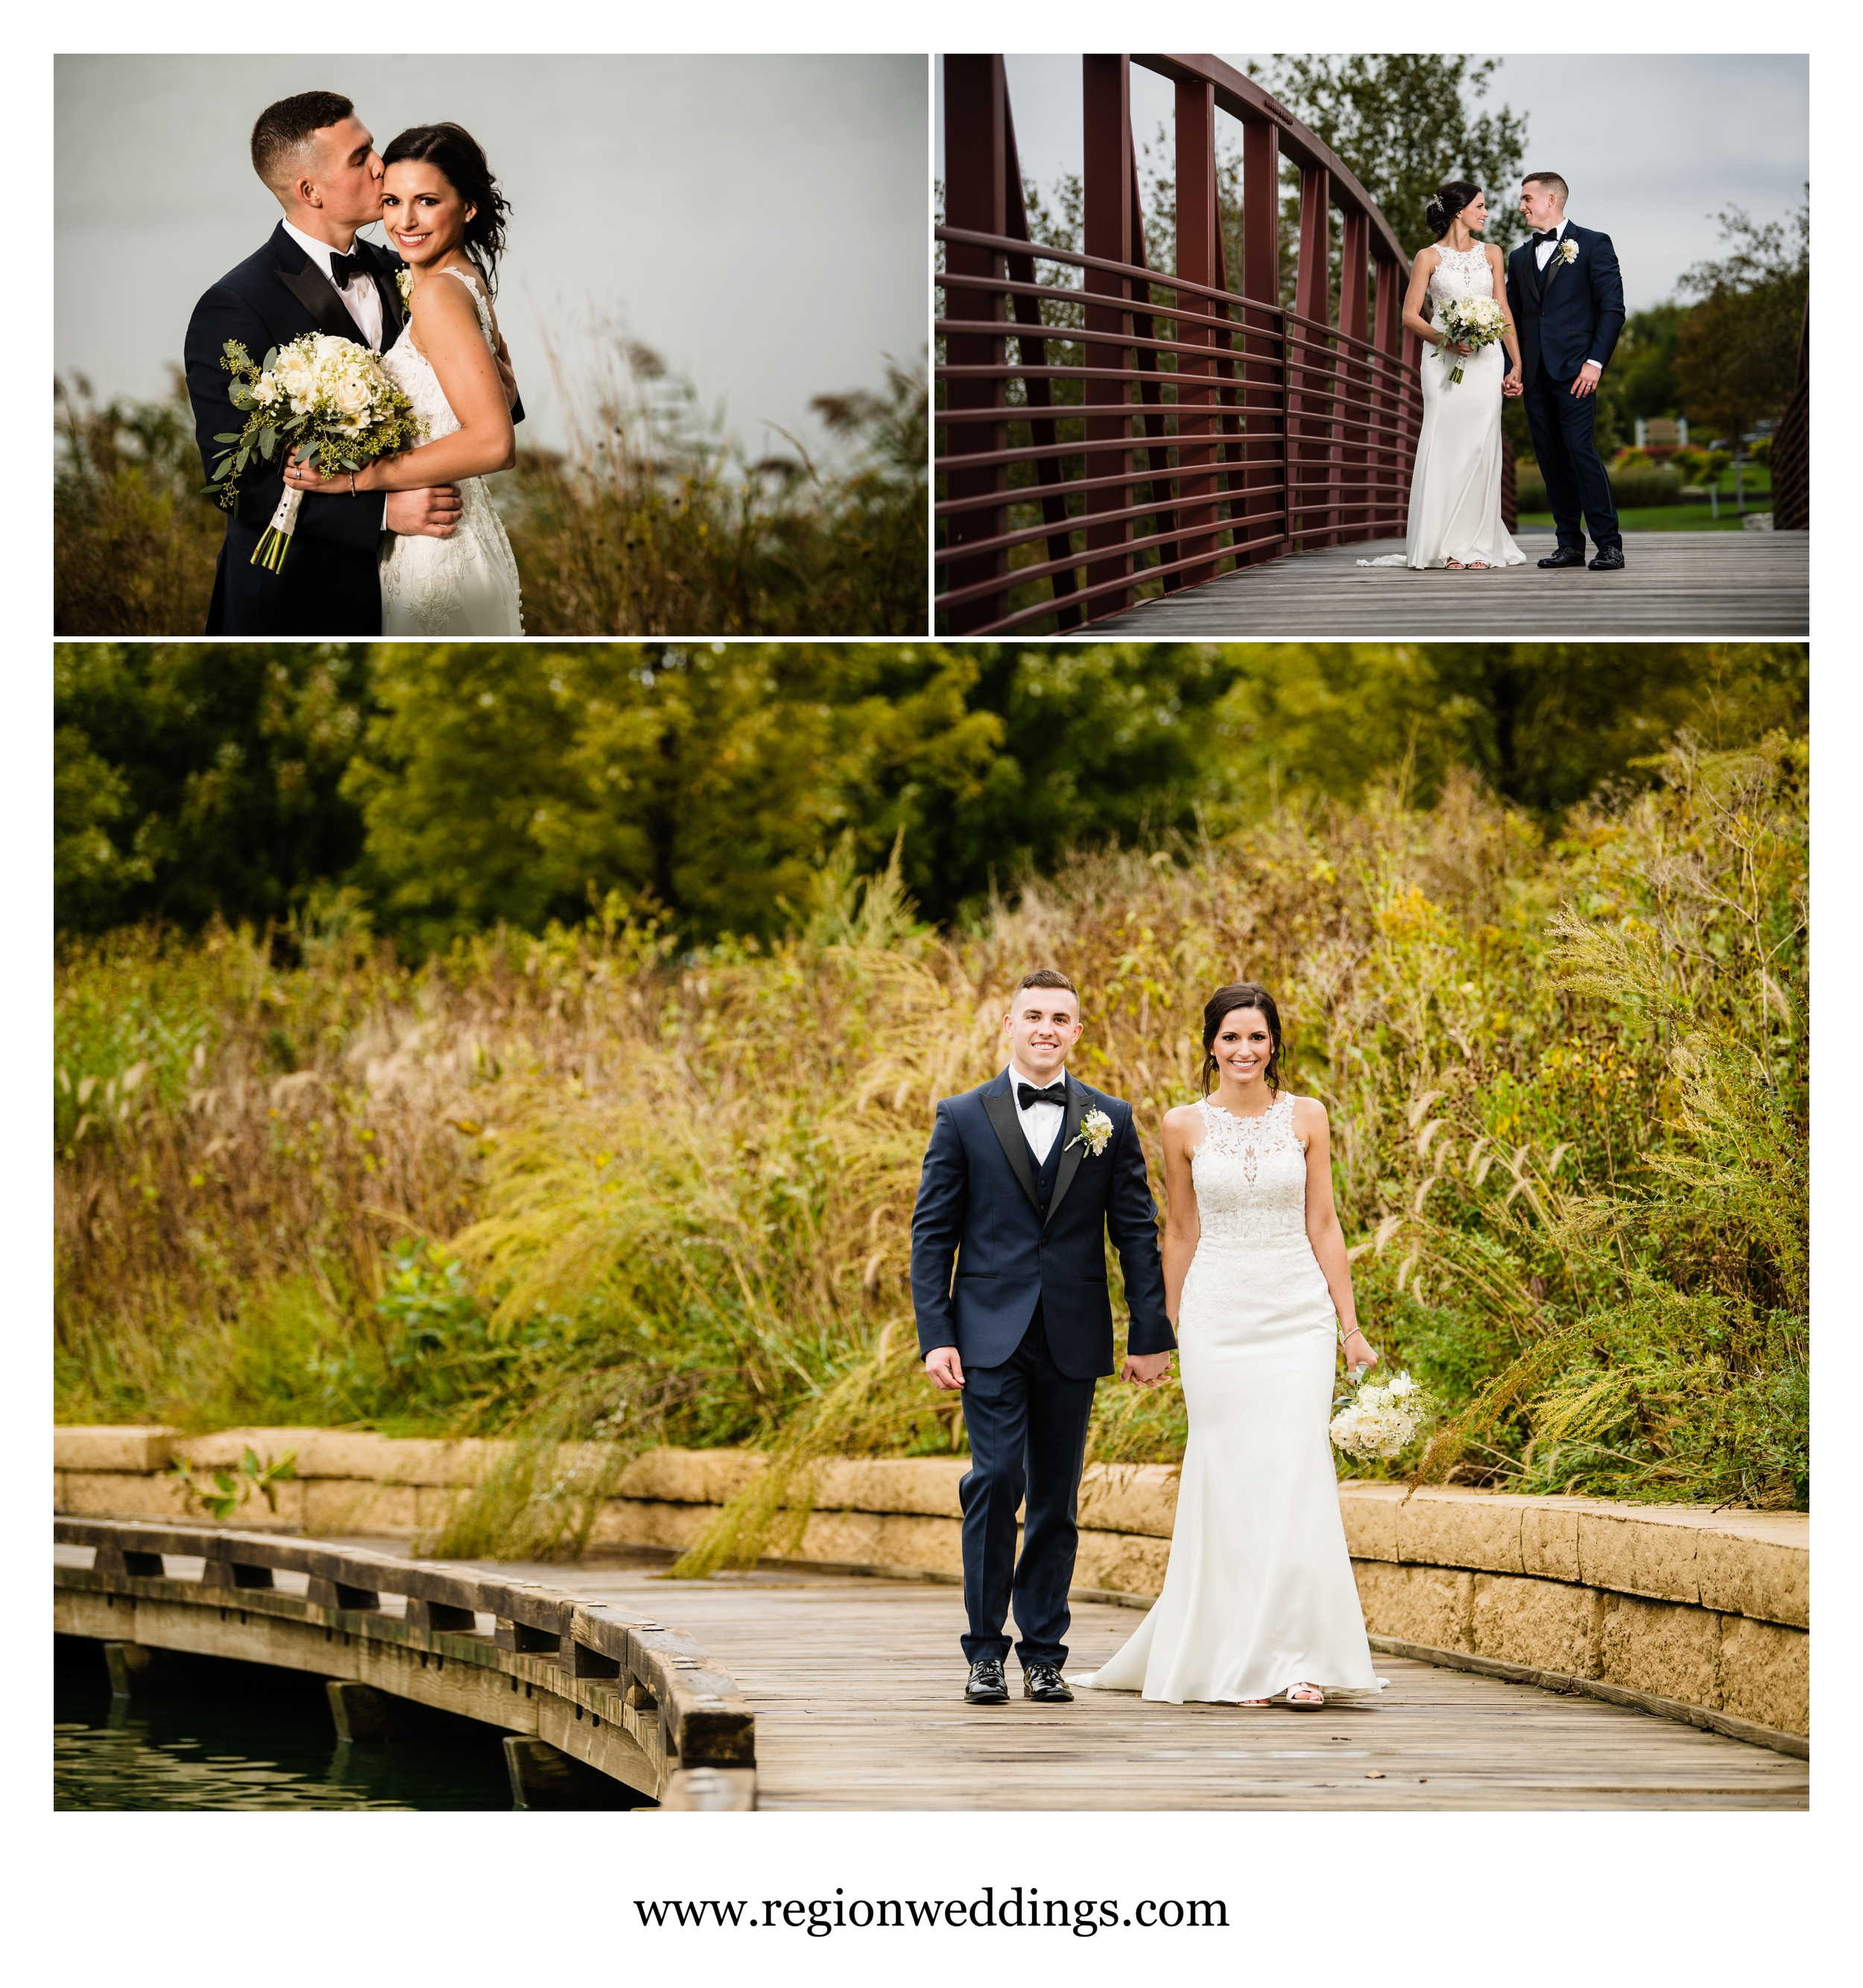 Wedding pictures at Centennial Park.